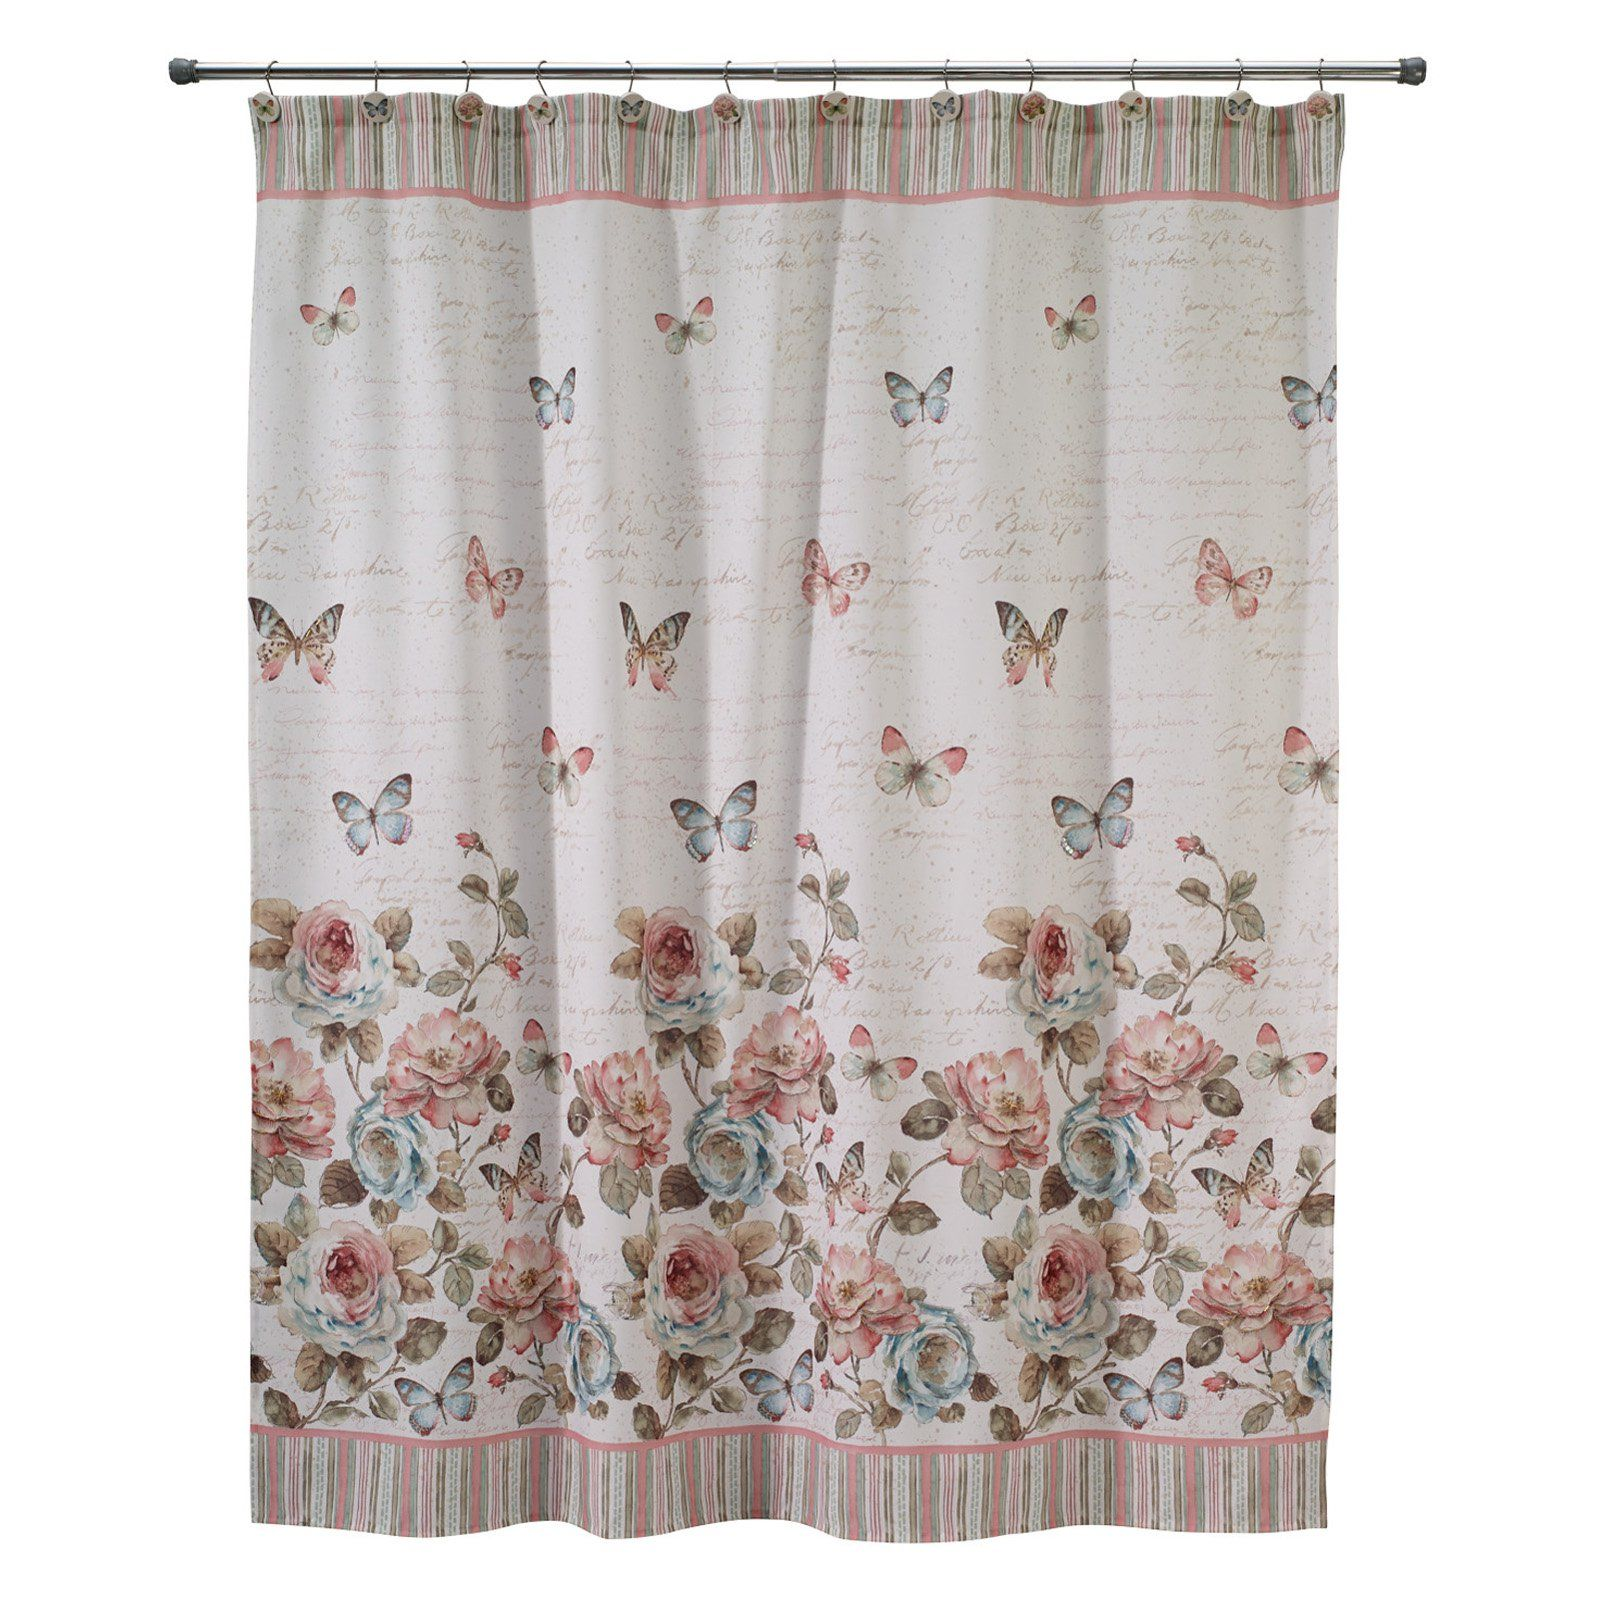 Avanti Butterfly Garden Shower Curtain Butterfly Shower Curtain